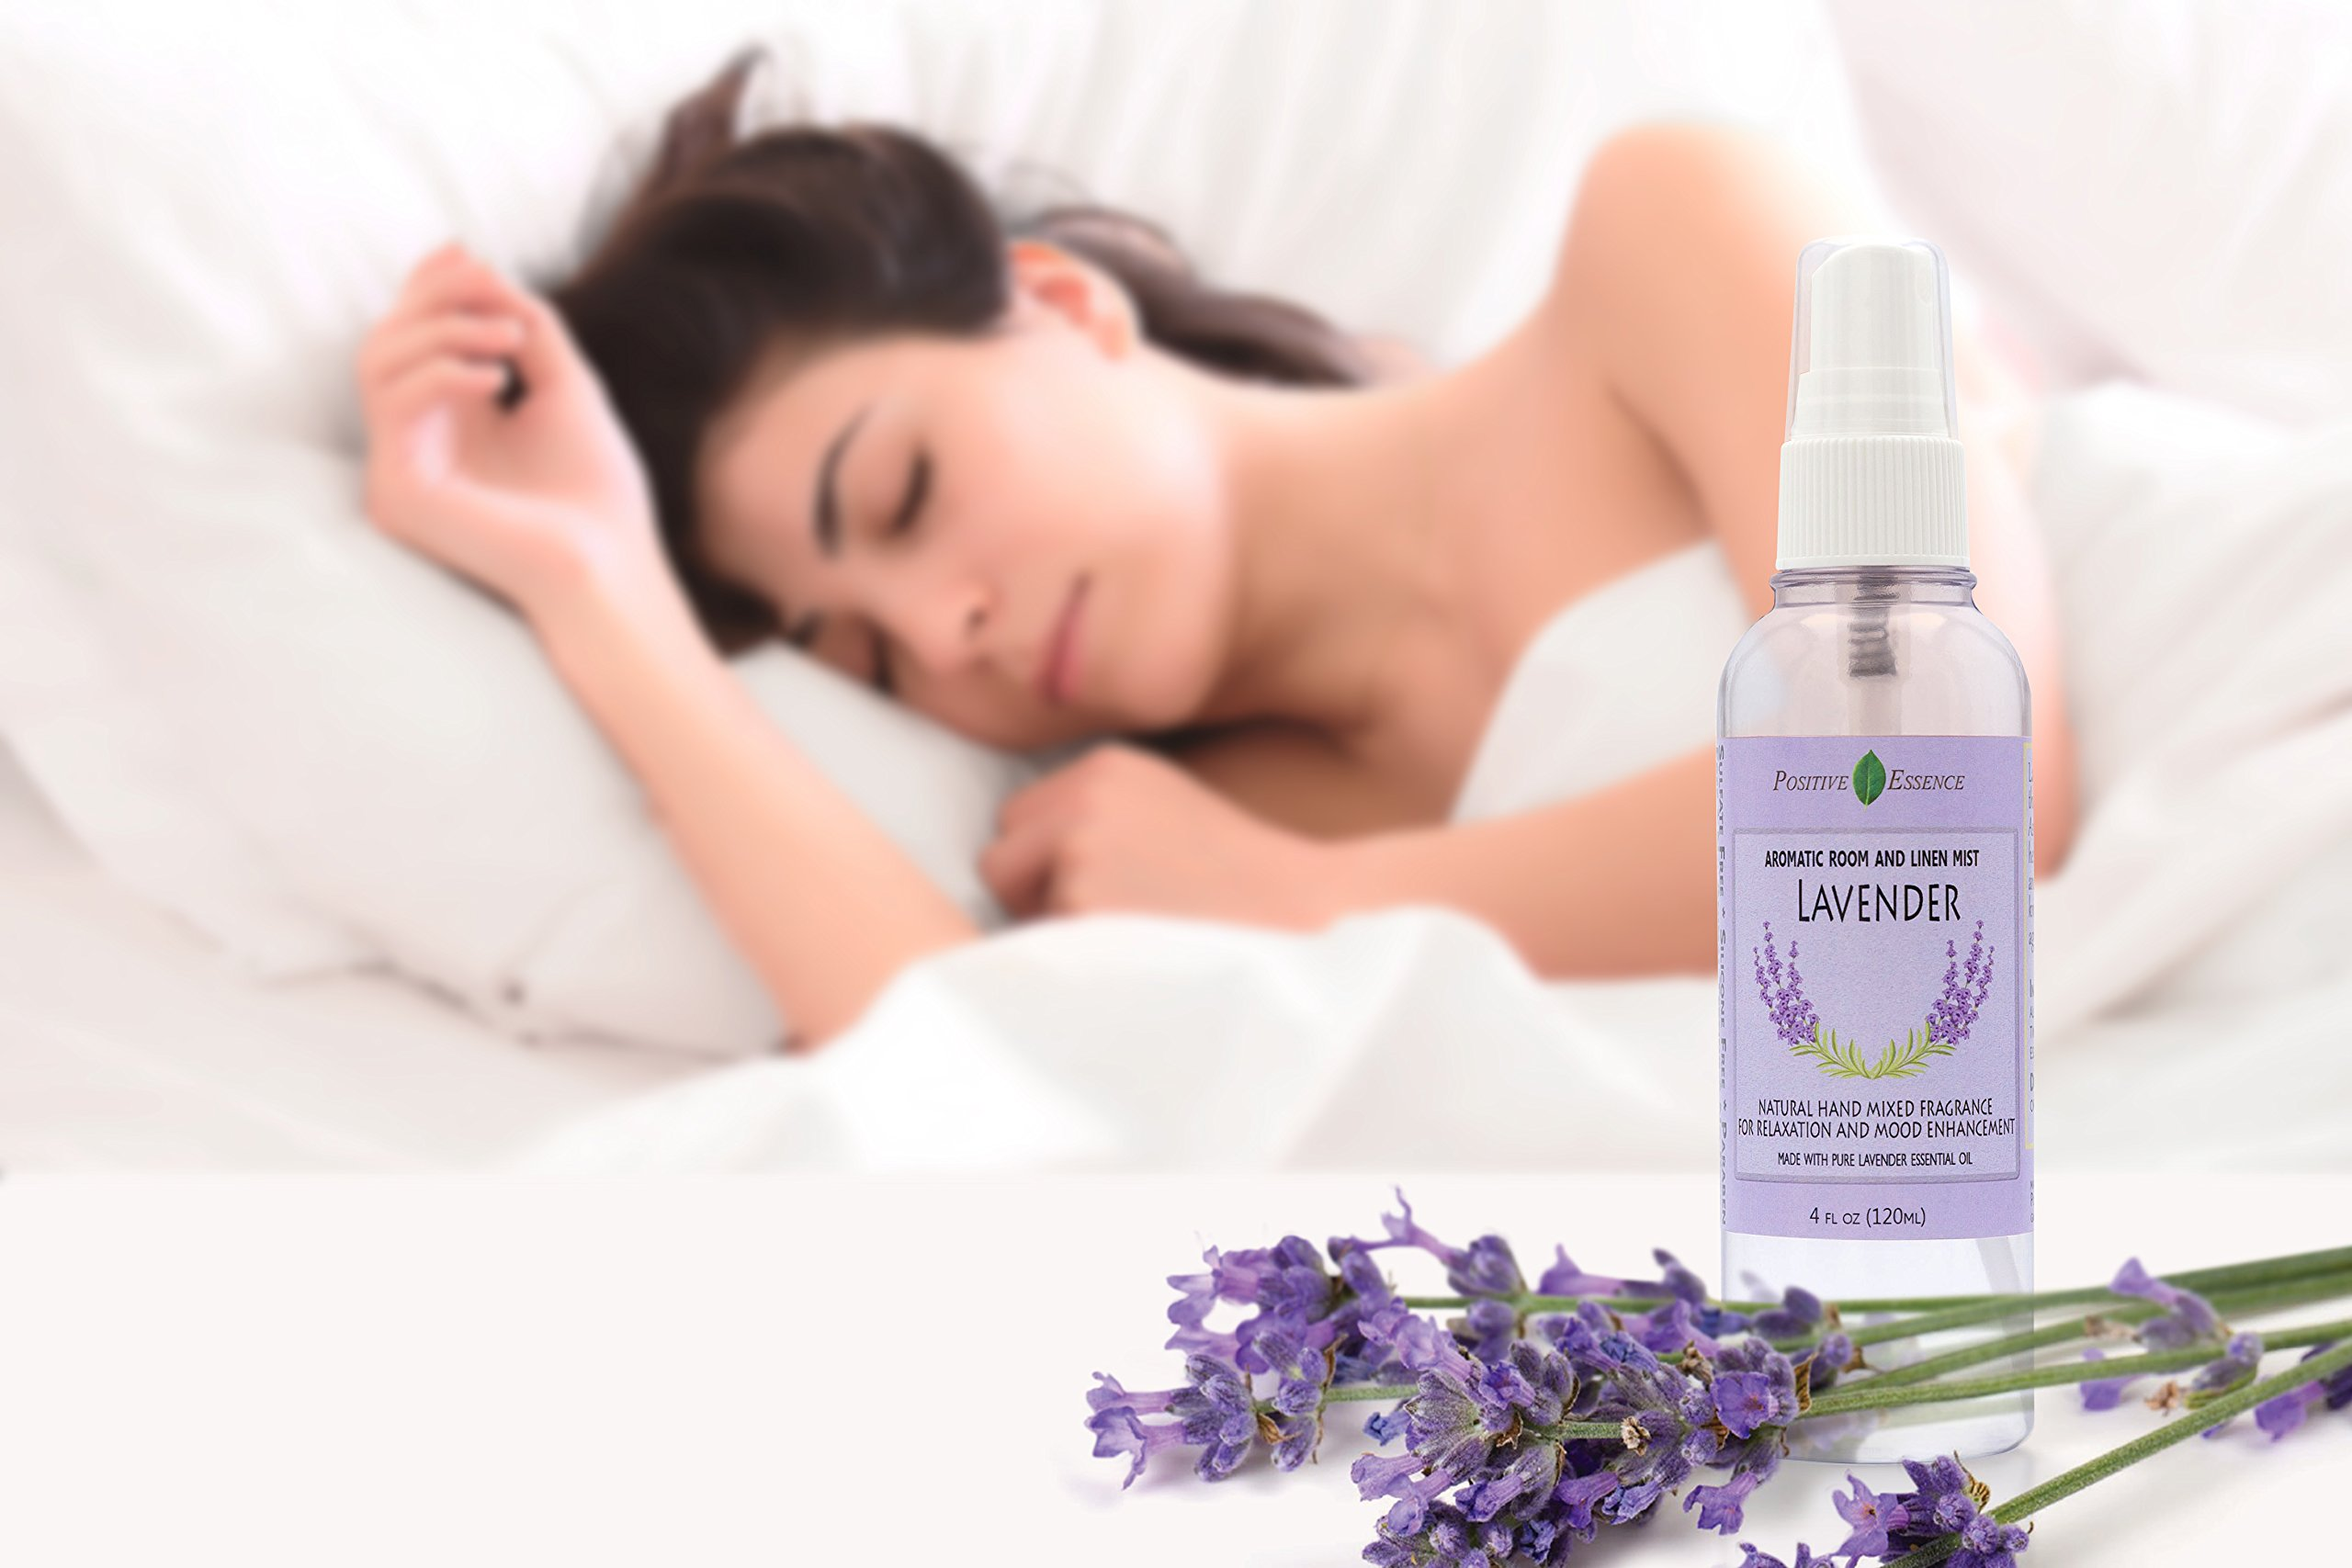 Positive Essence Lavender Linen & Room Spray - Natural Aromatic Mist Made with PURE LAVENDER ESSENTIAL OIL - Relax Your Body & Mind – Refreshing Non-Toxic Air Freshener Odor Eliminator by Positive Essence (Image #4)